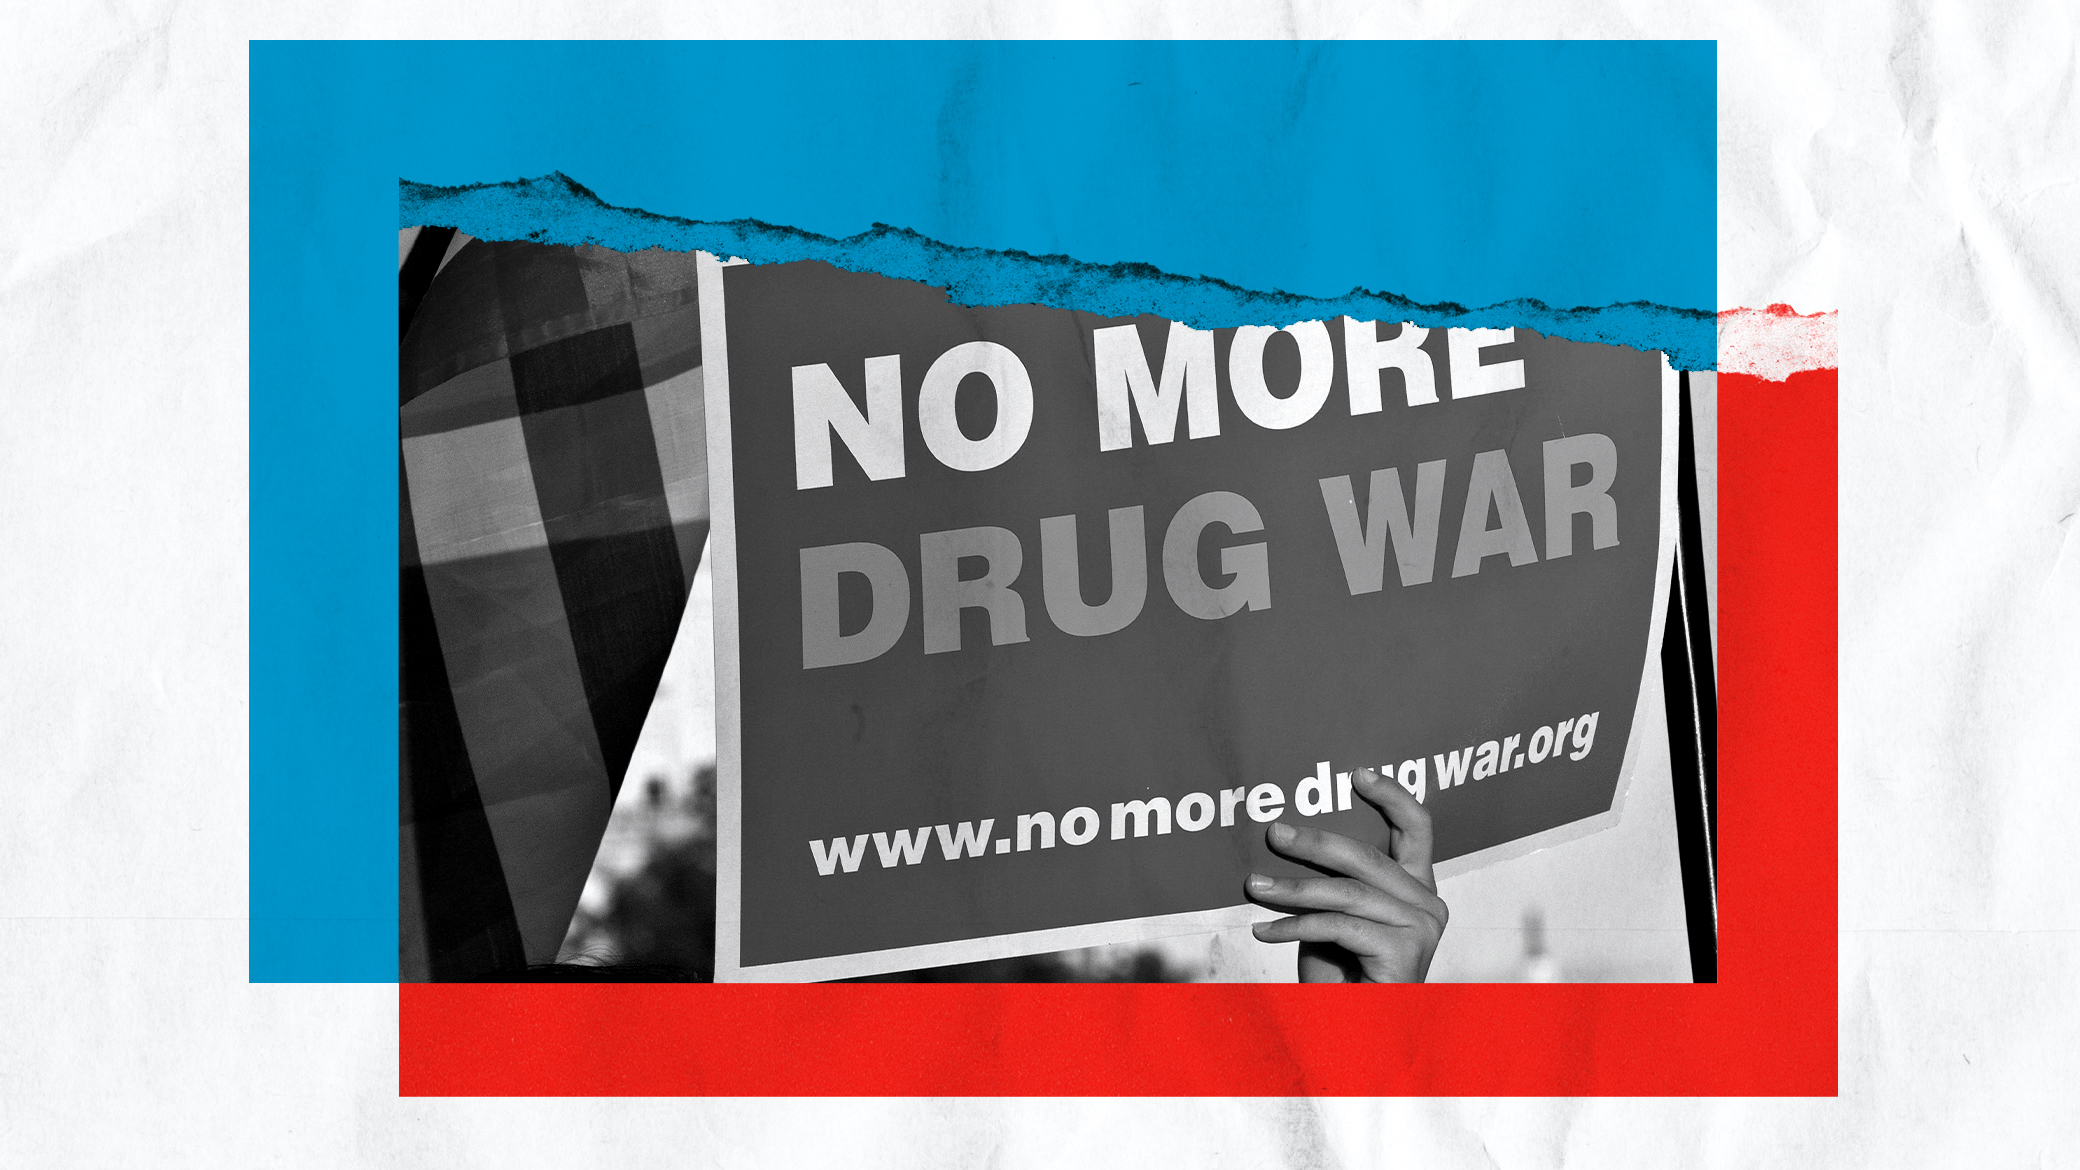 Photo illustration of a sign saying no more drug war.